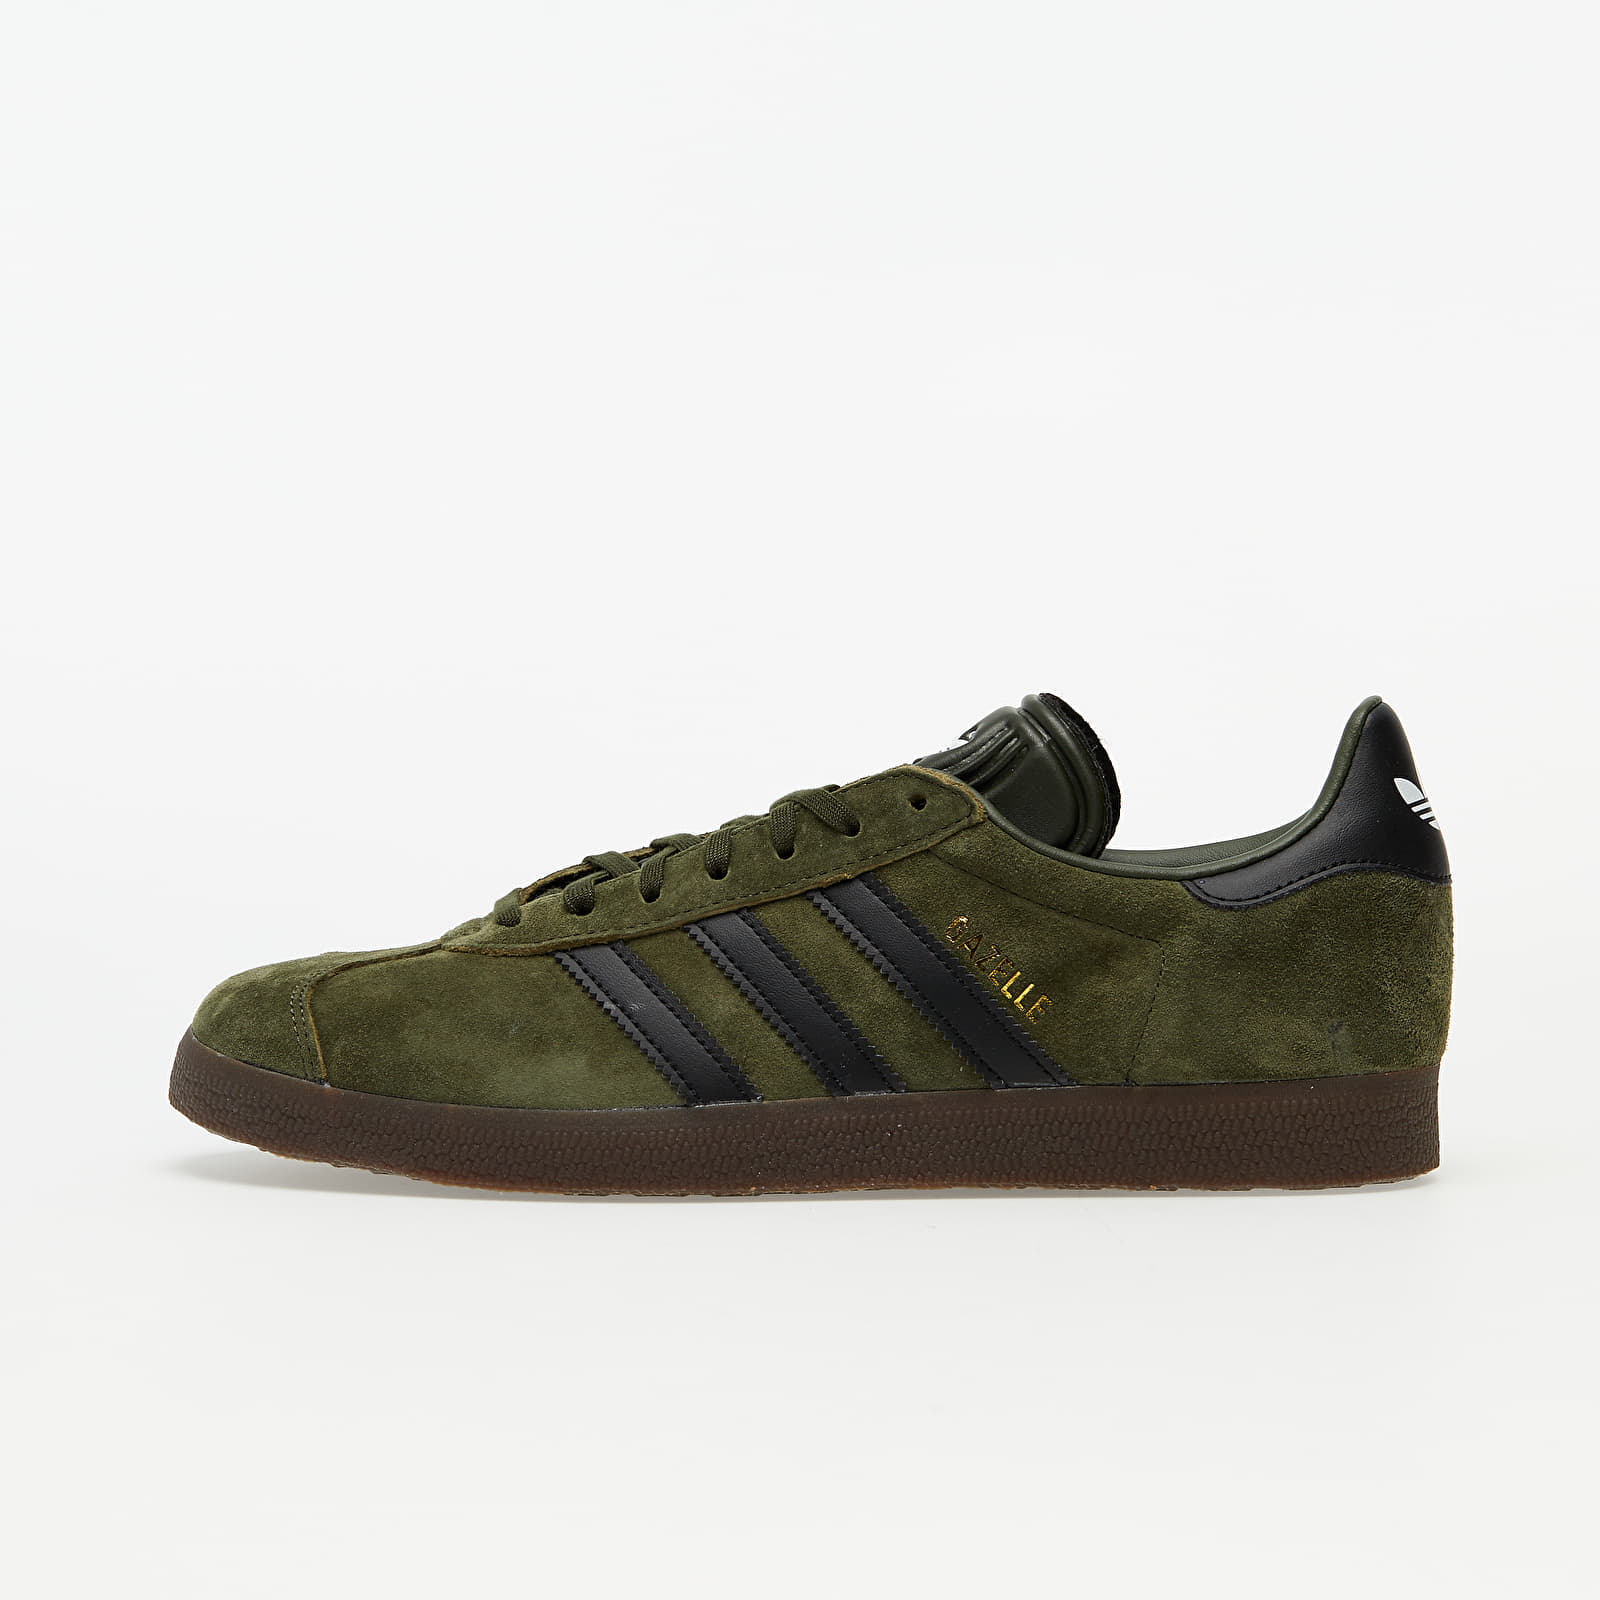 Men's shoes adidas Gazelle Night Cargo/ Core Black/ Gum 5